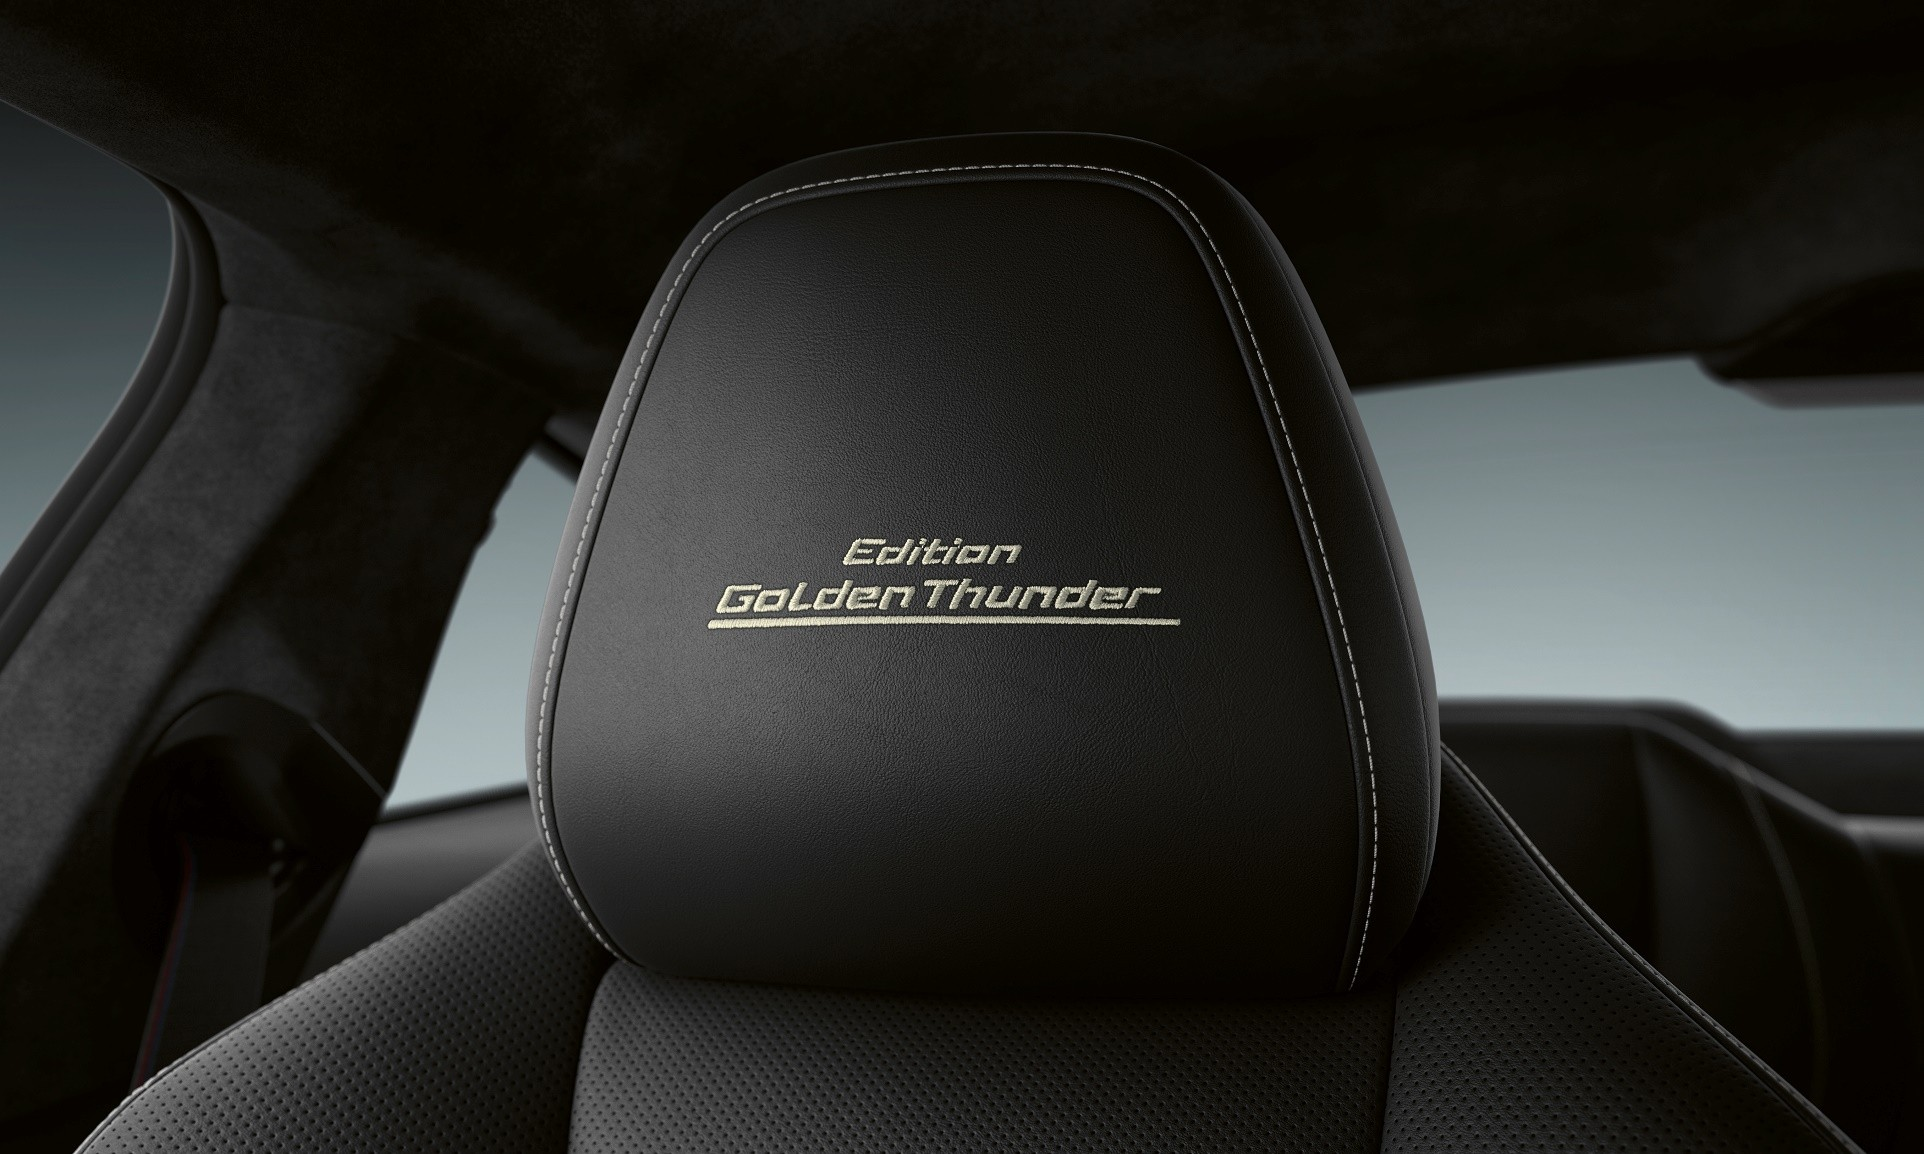 BMW 8 Series Edition Golden Thunder headrest